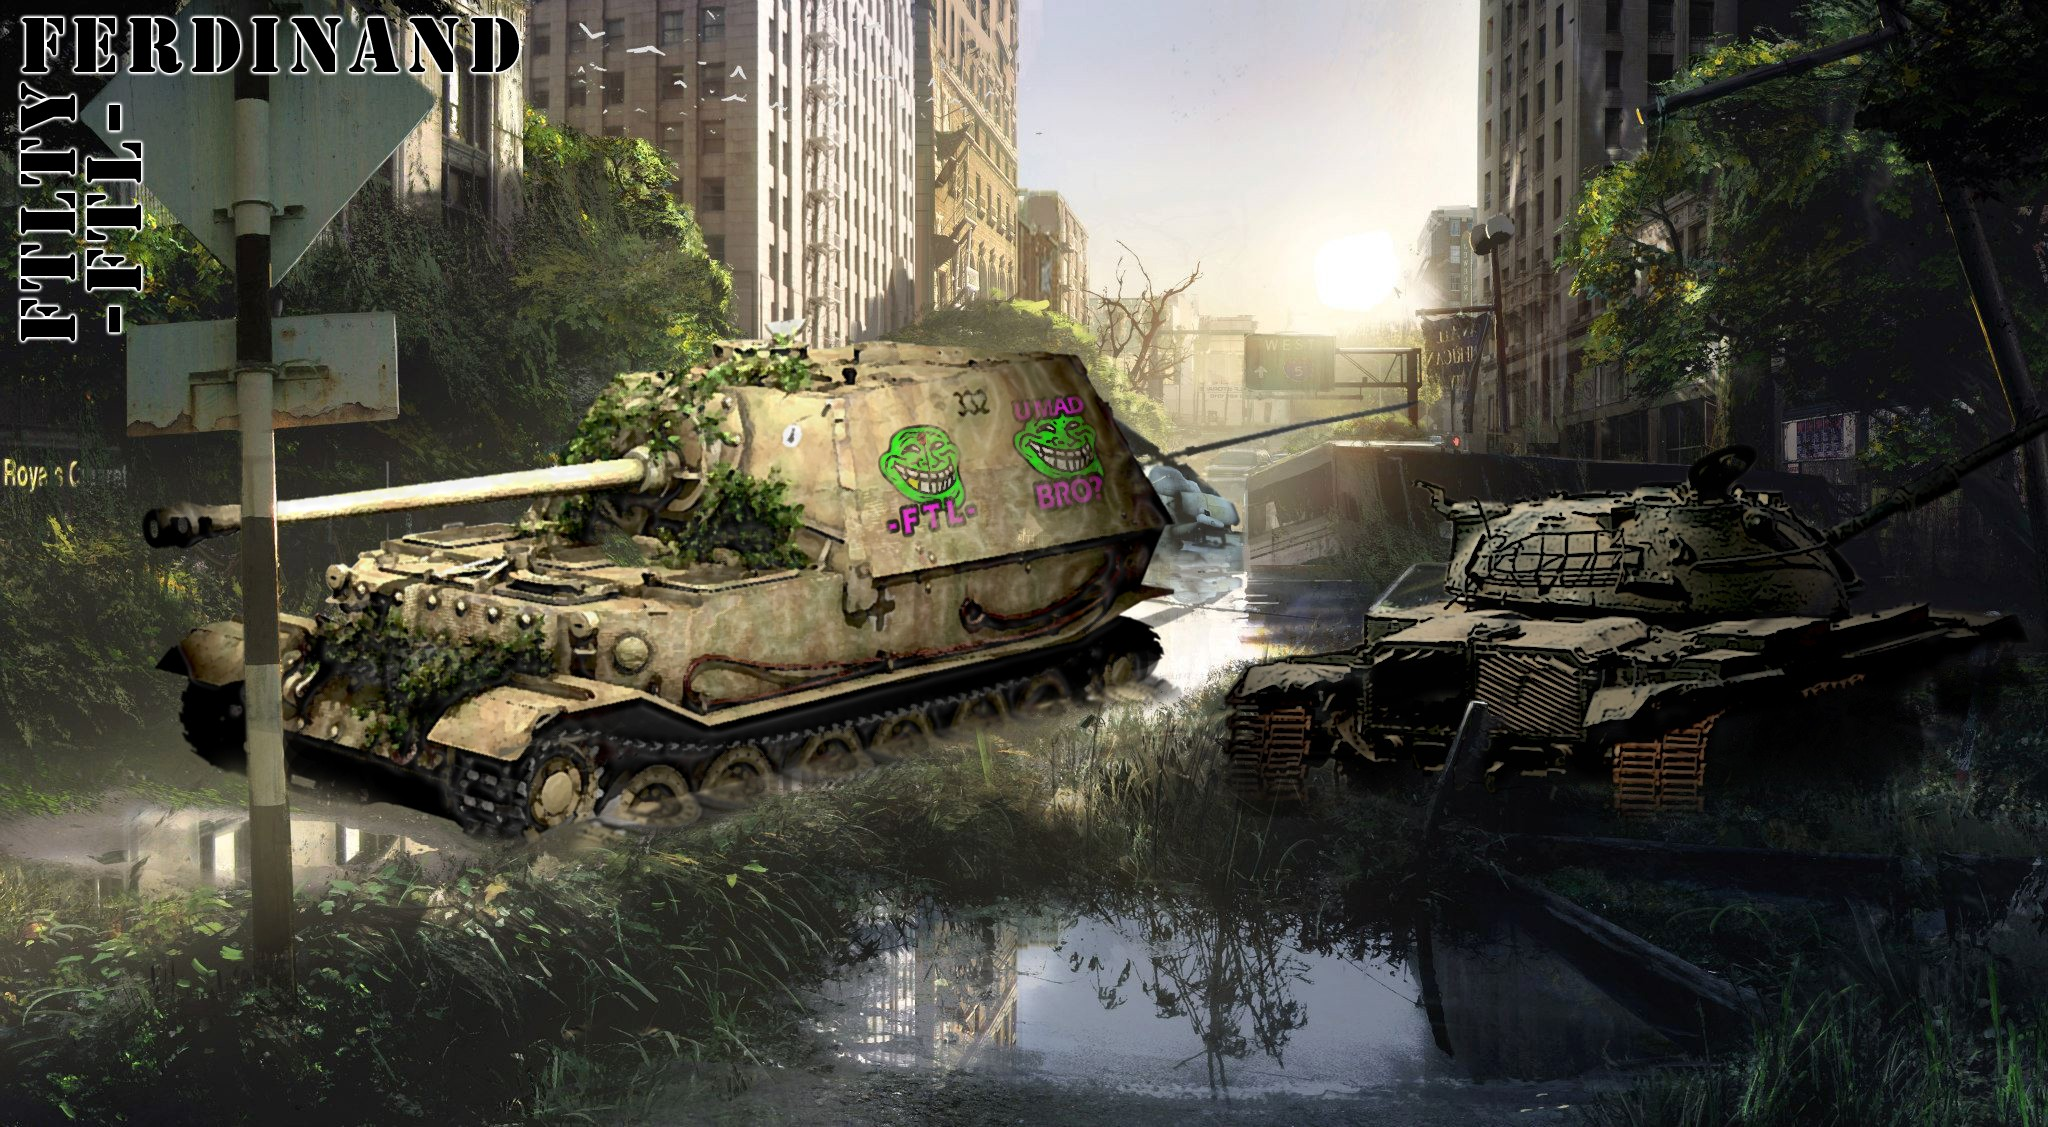 FERDINAND TANK DESTROYER FTL FTLTY CLAN WORLD OF TANKS FATALITY FATAL1TY